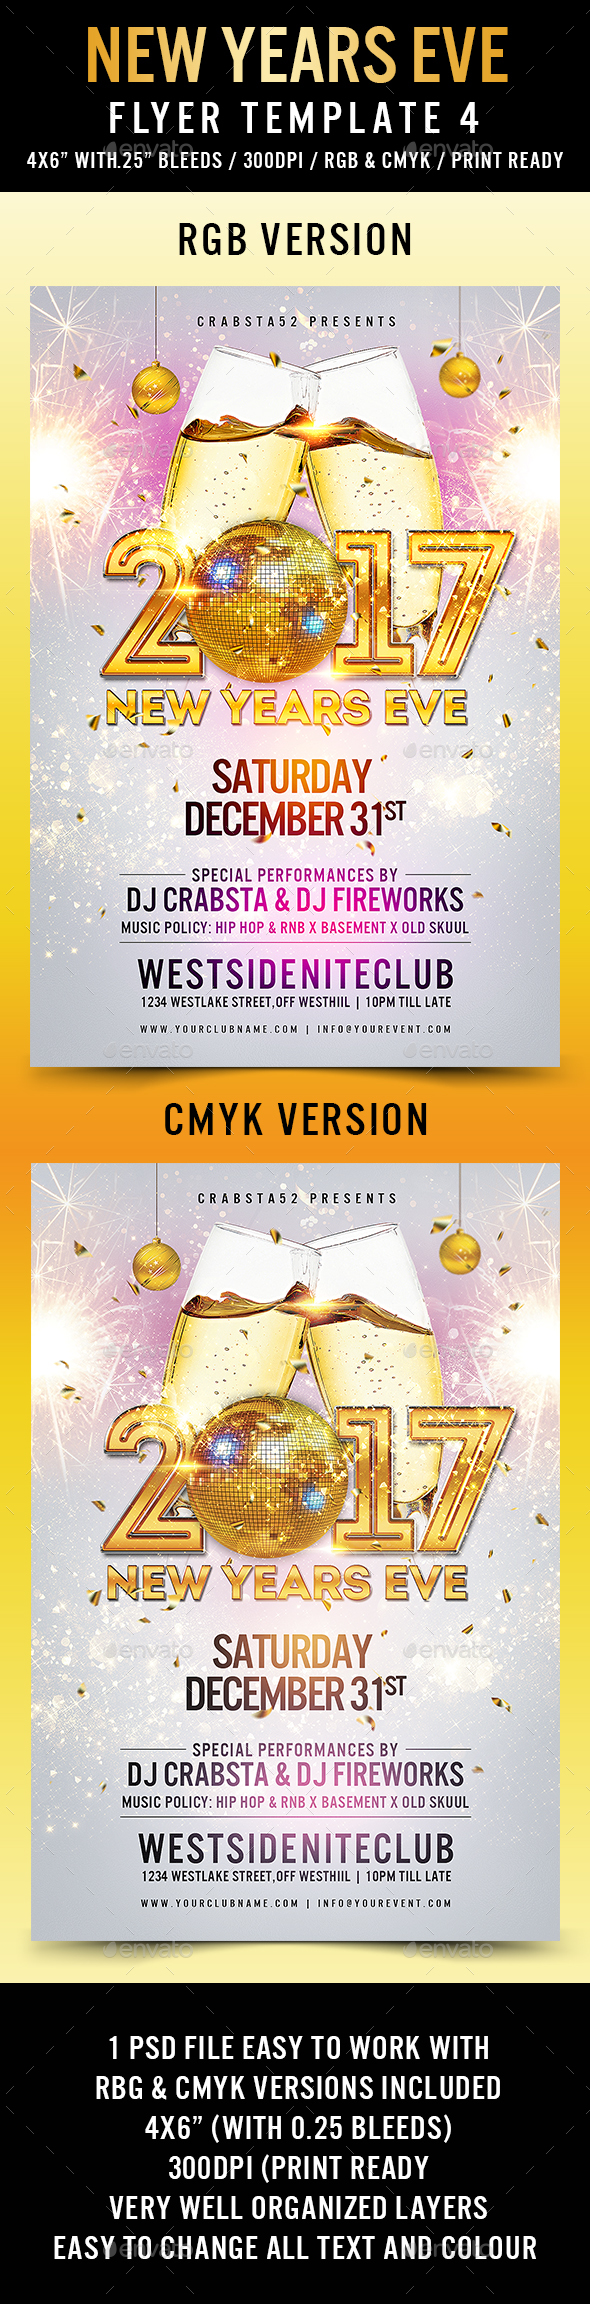 New Years Eve Flyer Template 4 - Clubs & Parties Events